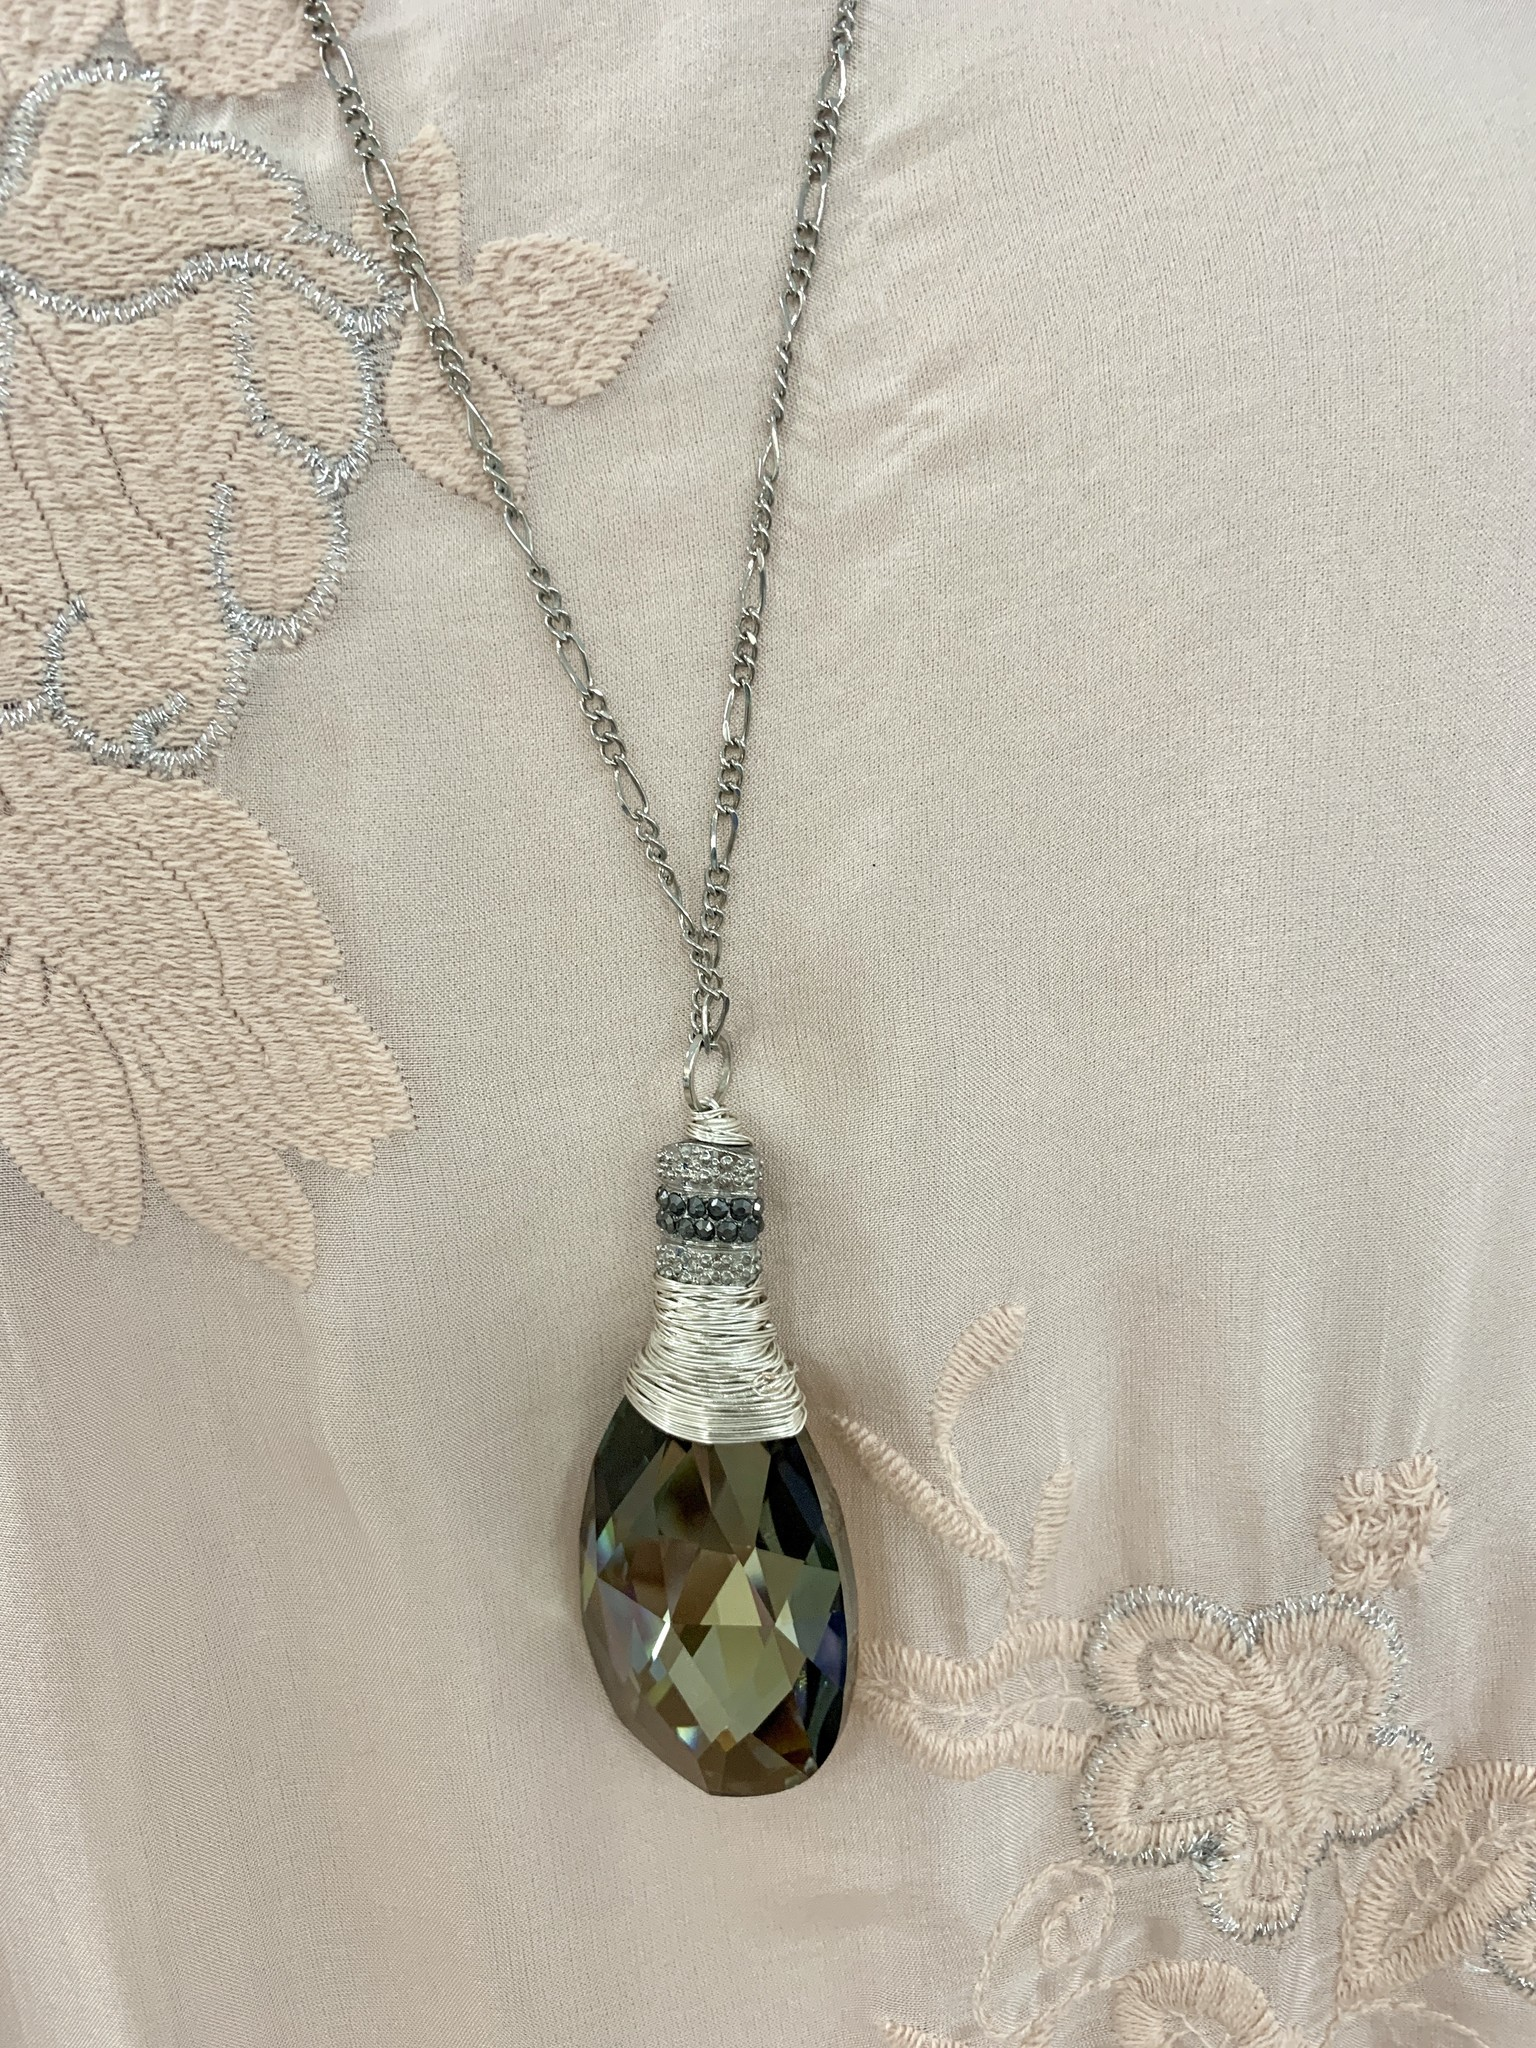 Abby May Pendant Necklace